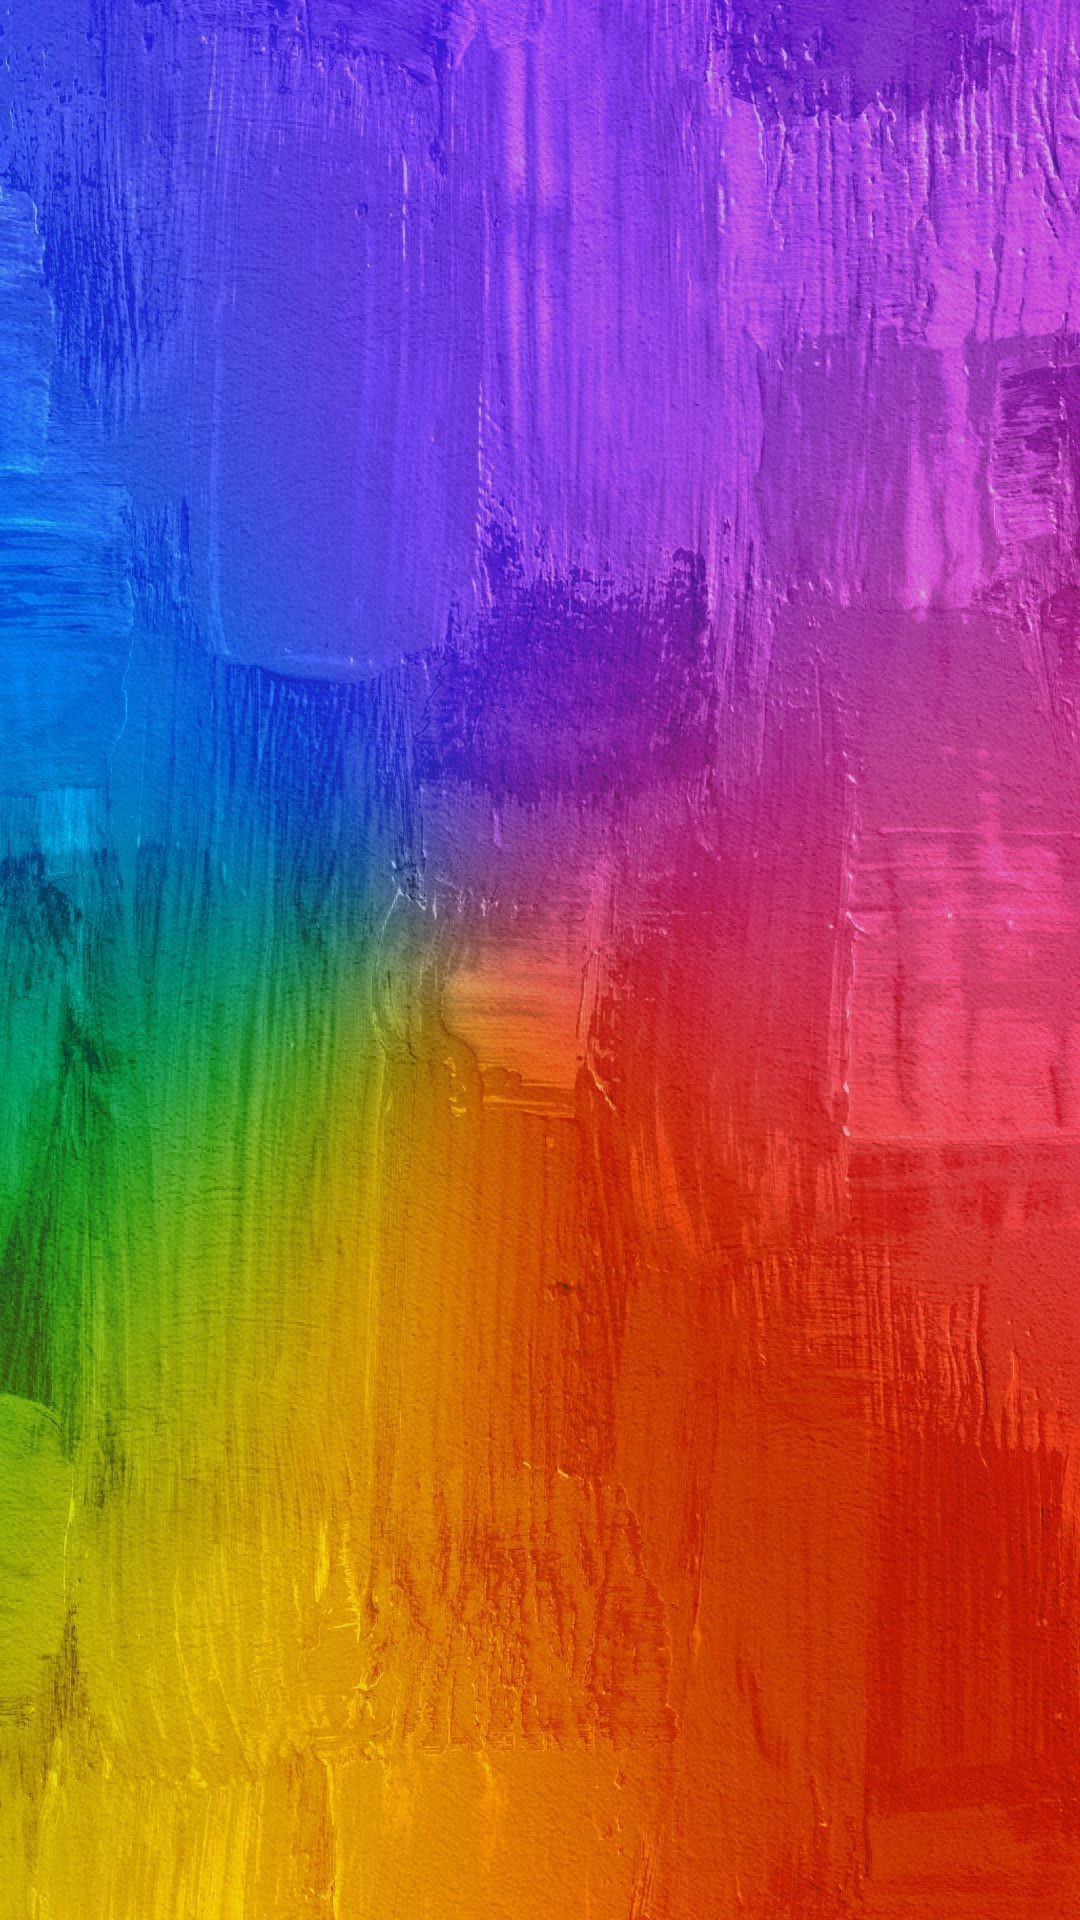 Res: 1080x1920, Fondo de colores arco iris | Rainbow wallpaper - #backgrounds #colores  #colors